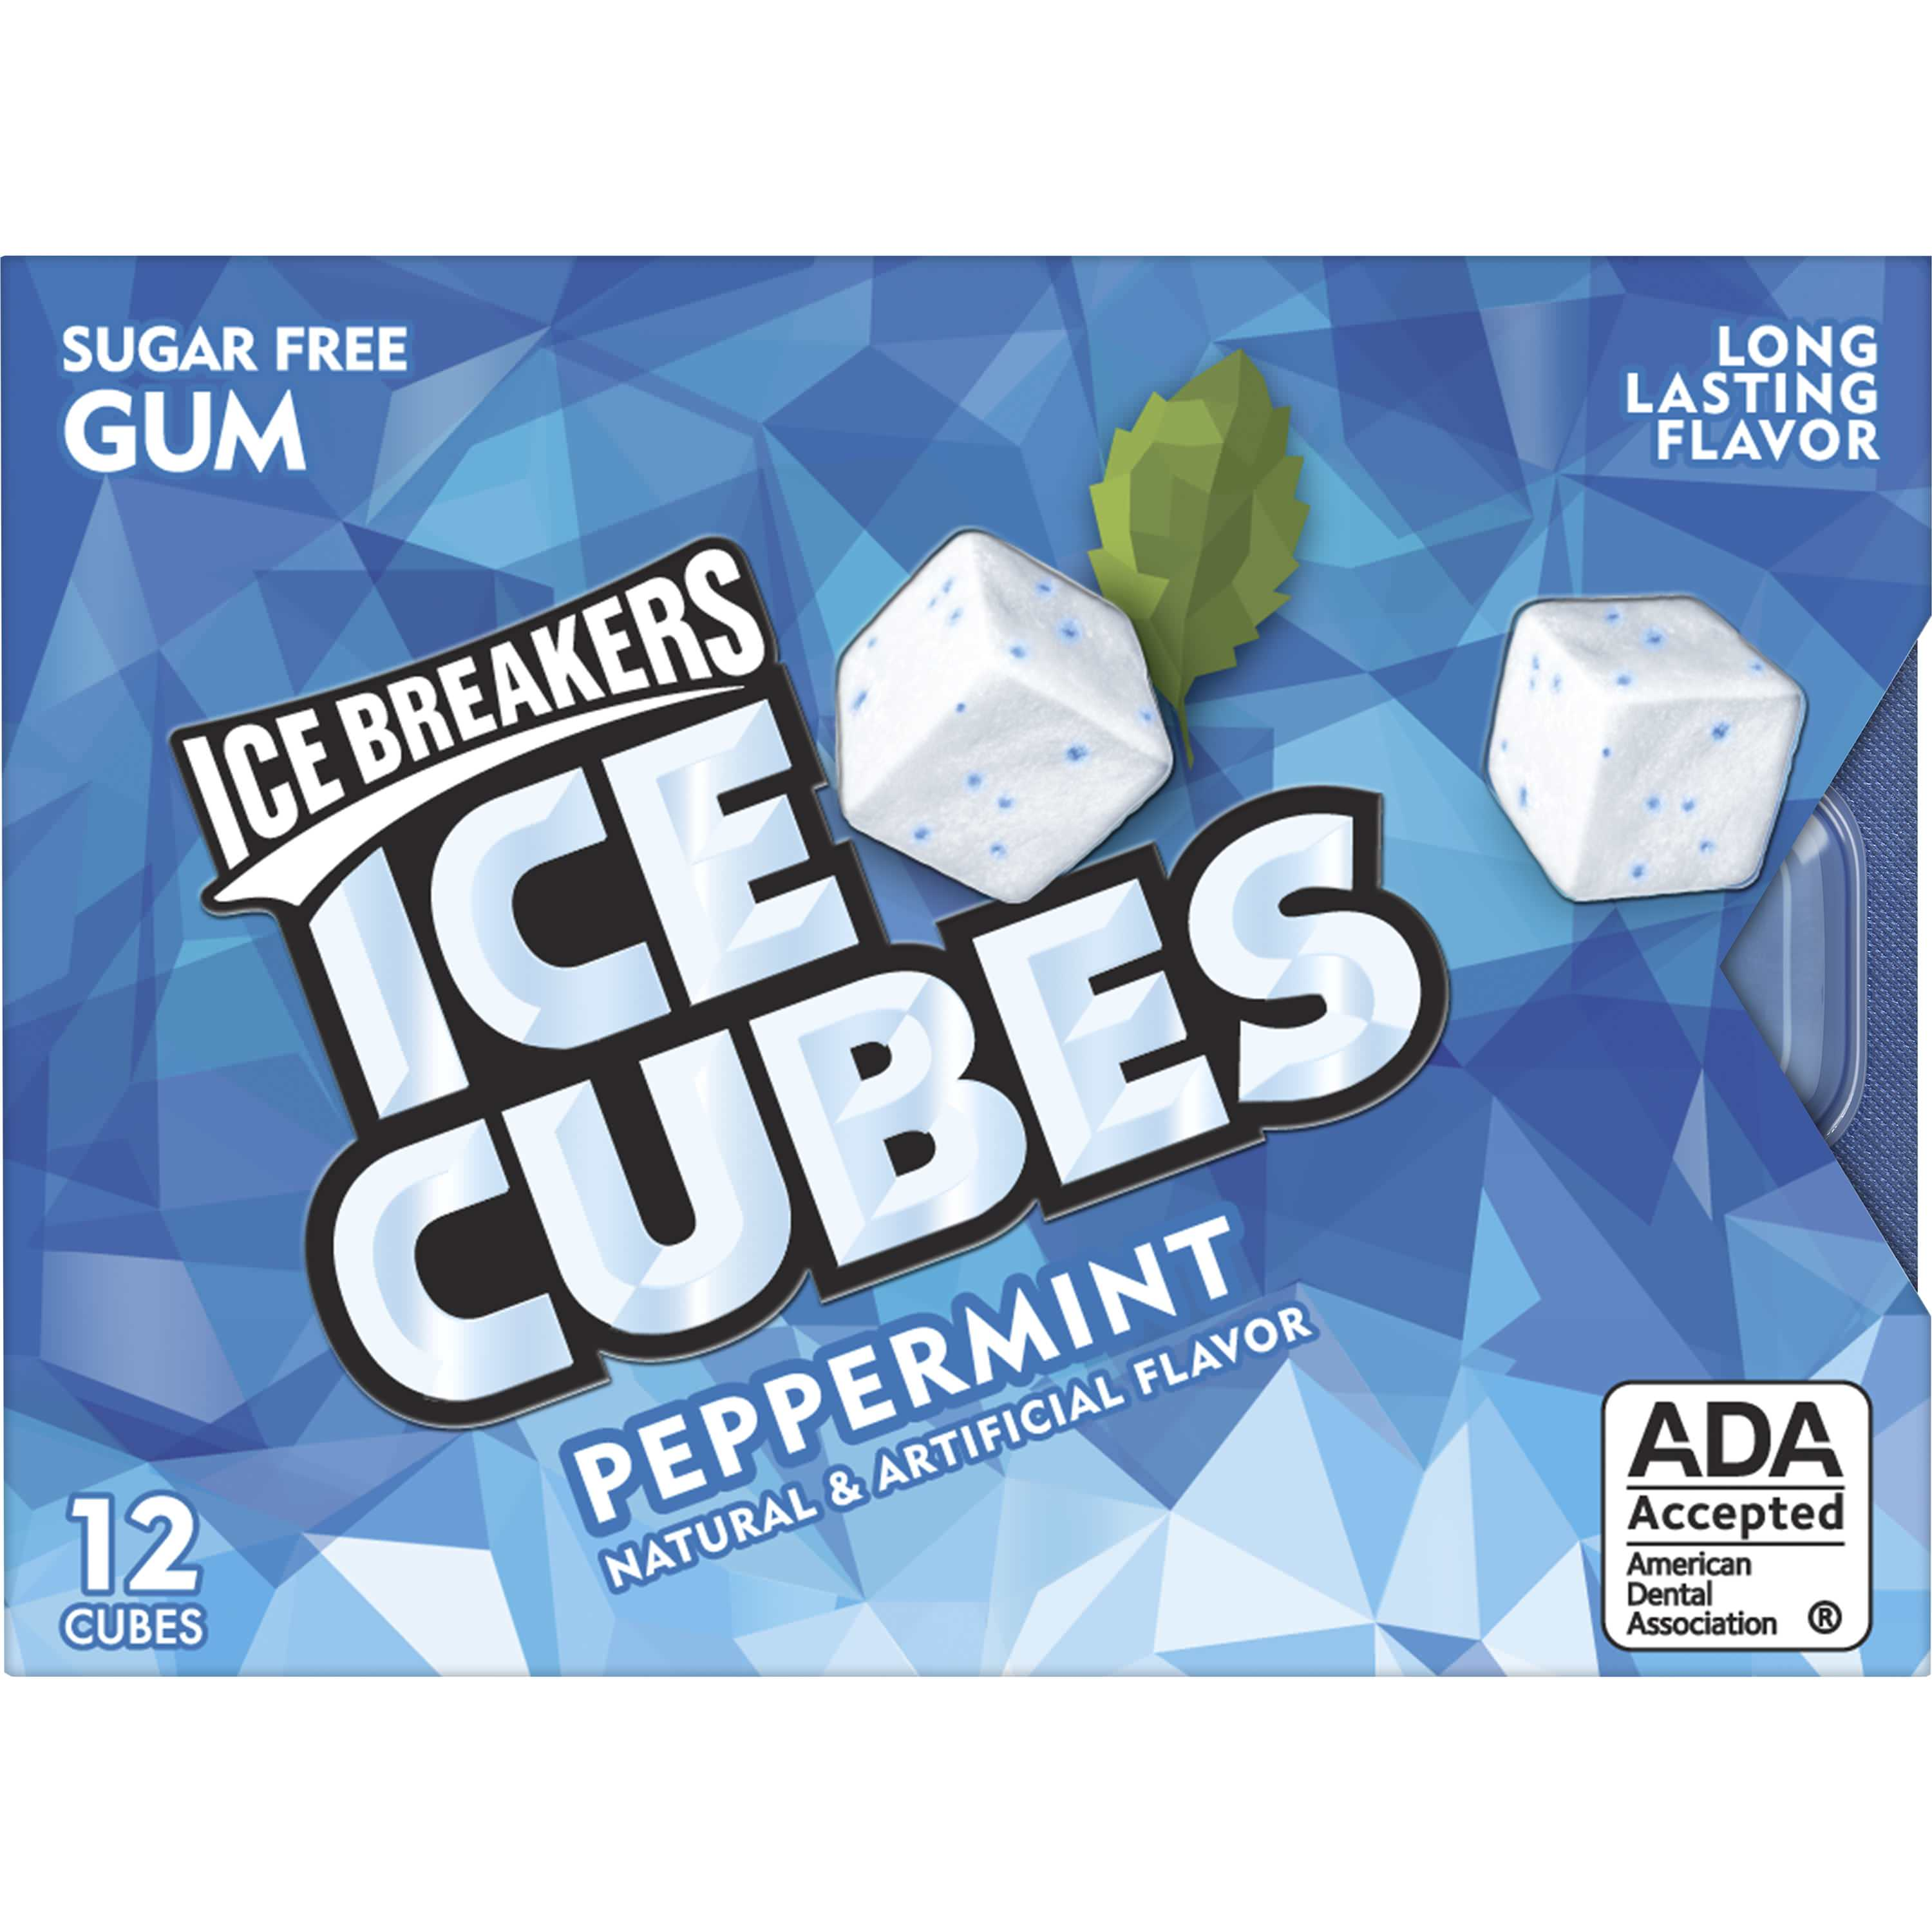 ICE BREAKERS ICE CUBES Sugar-Free Gum, Peppermint flavor, 12 Pieces